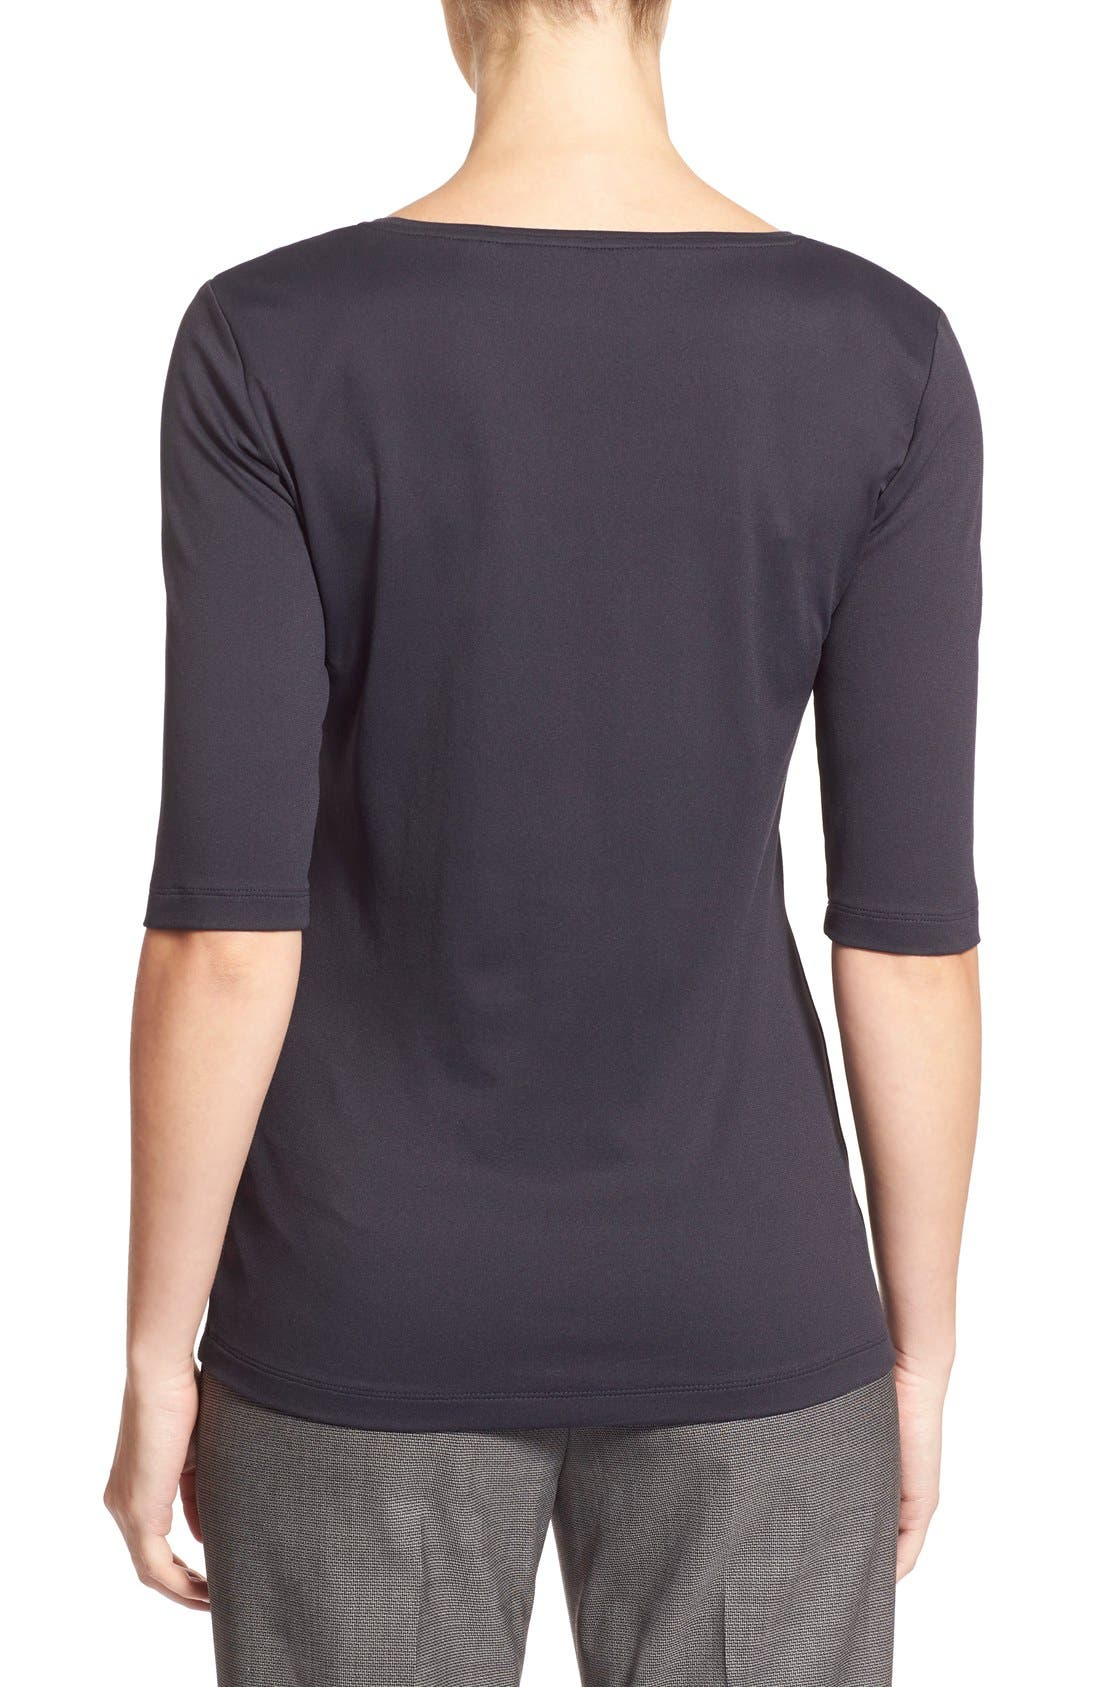 Alternate Image 2  - BOSS Scoop Neck Stretch Jersey Top